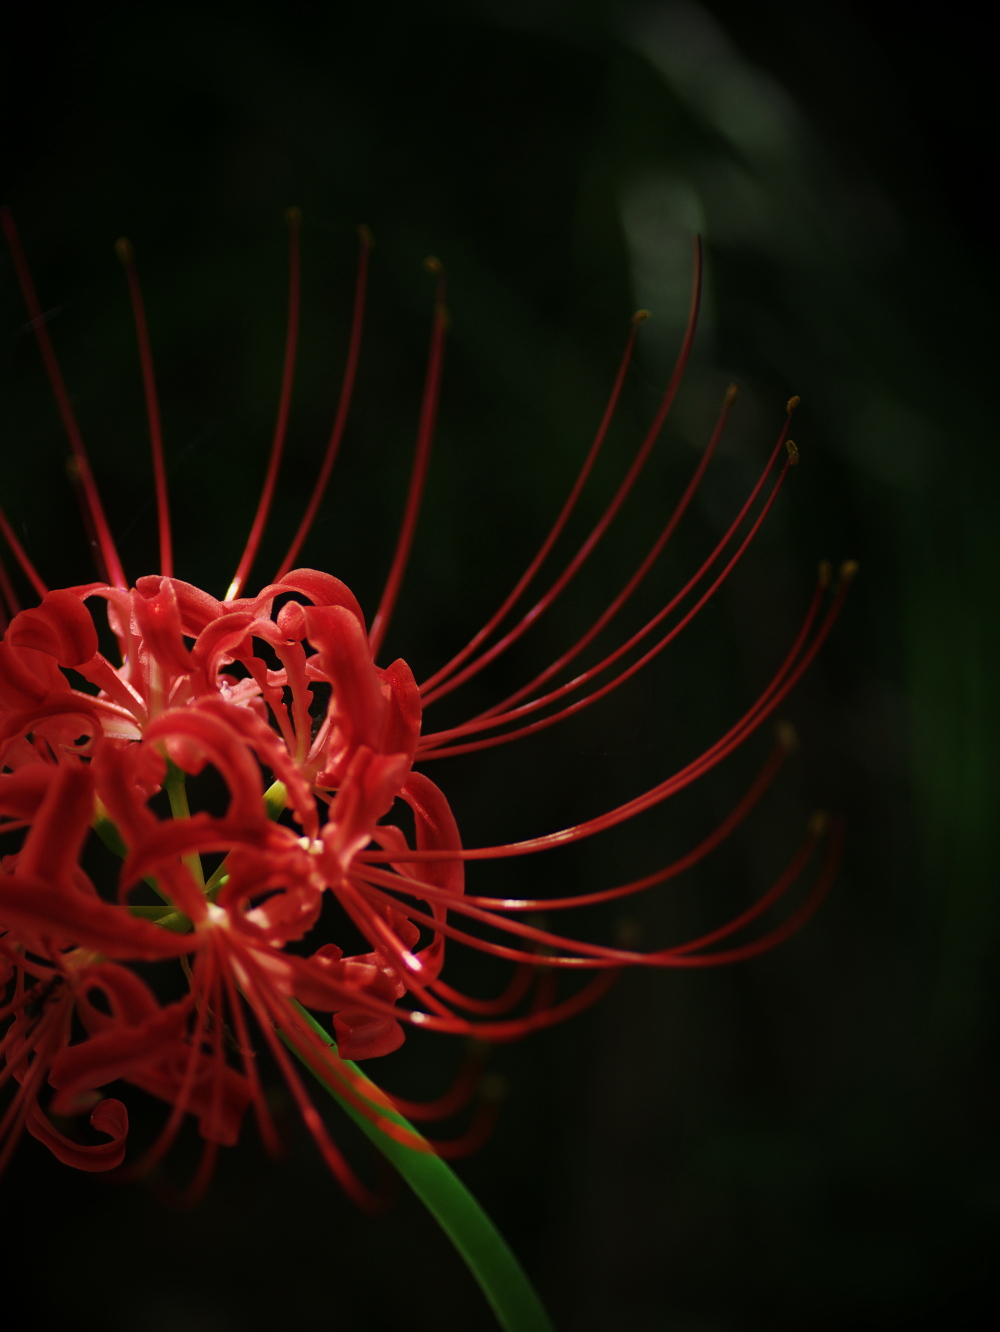 Red spider lily_e0169421_20285432.jpg